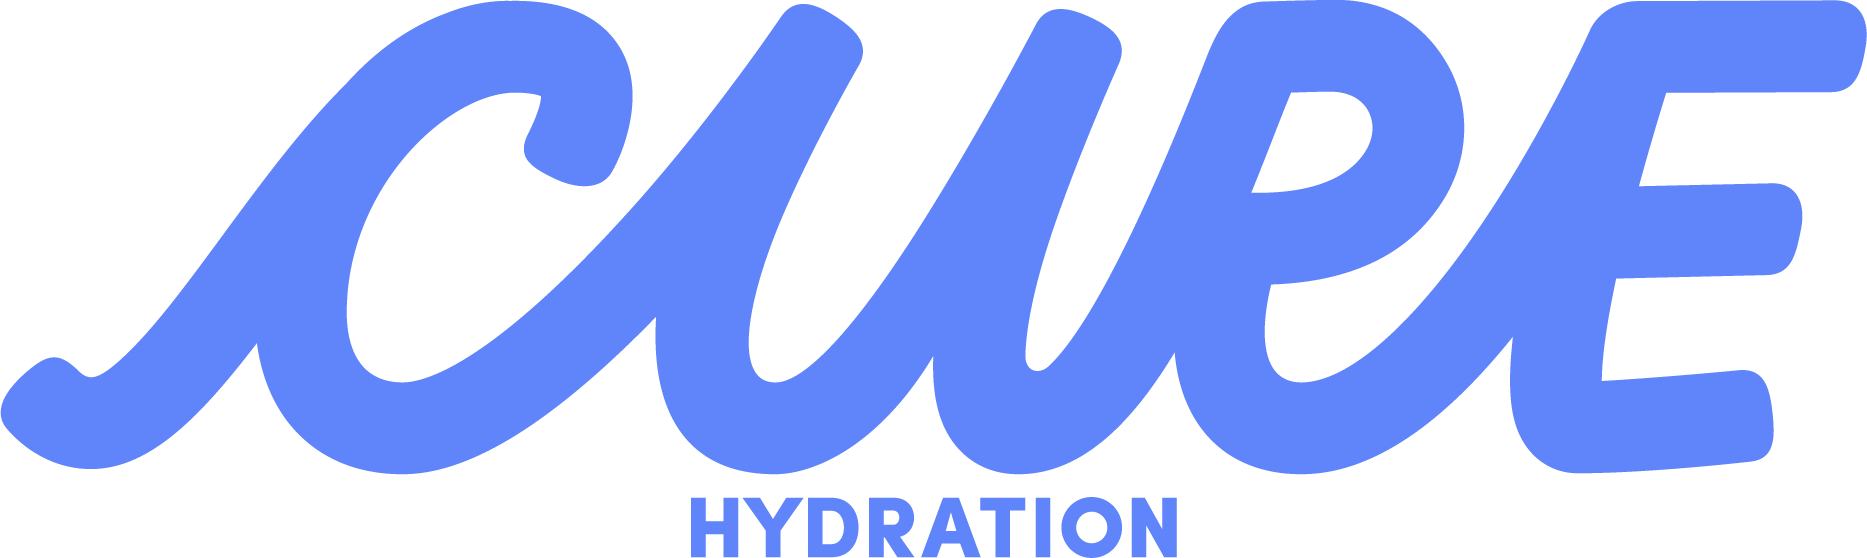 Cure Hydration.png